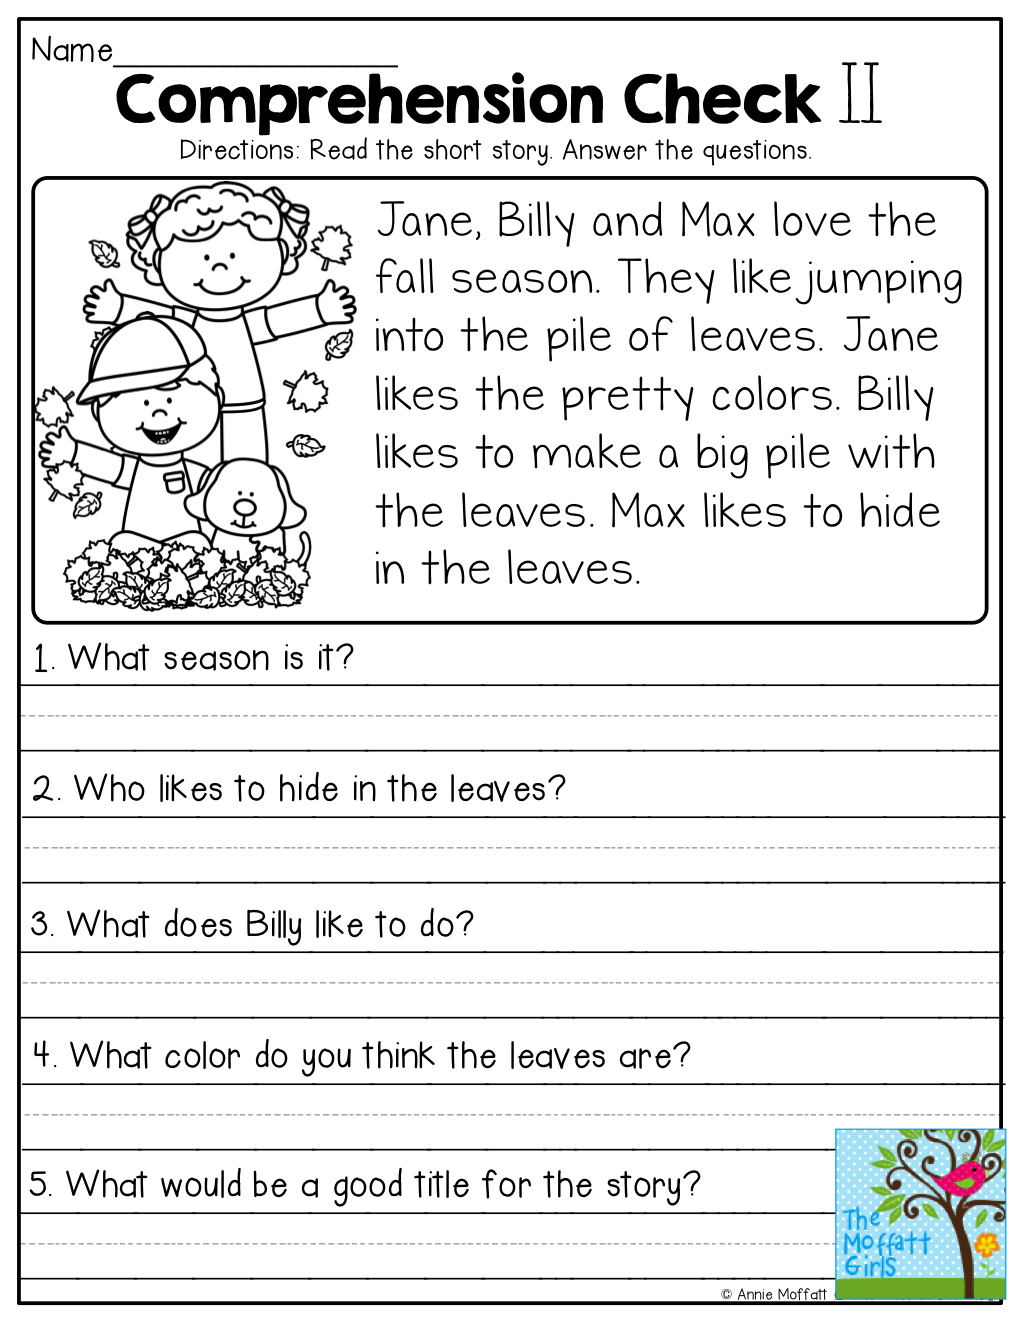 Comprehension Checks And So Many More Useful Printables! | Reading - Free Printable Comprehension Worksheets For Grade 5